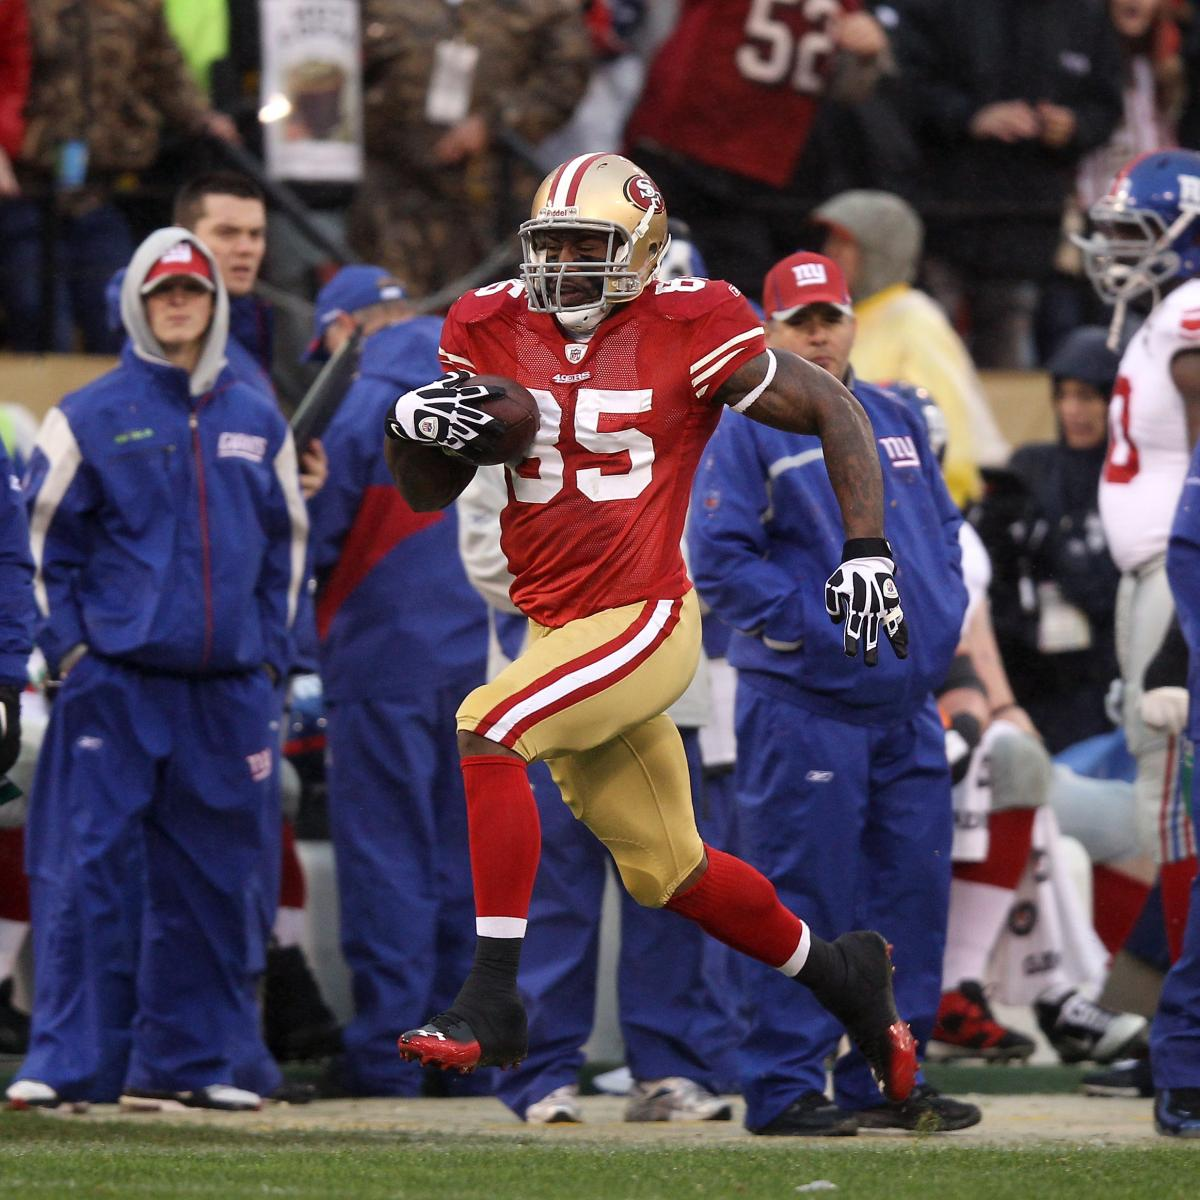 San Francisco 49ers Offense Will Be Strong In 2012